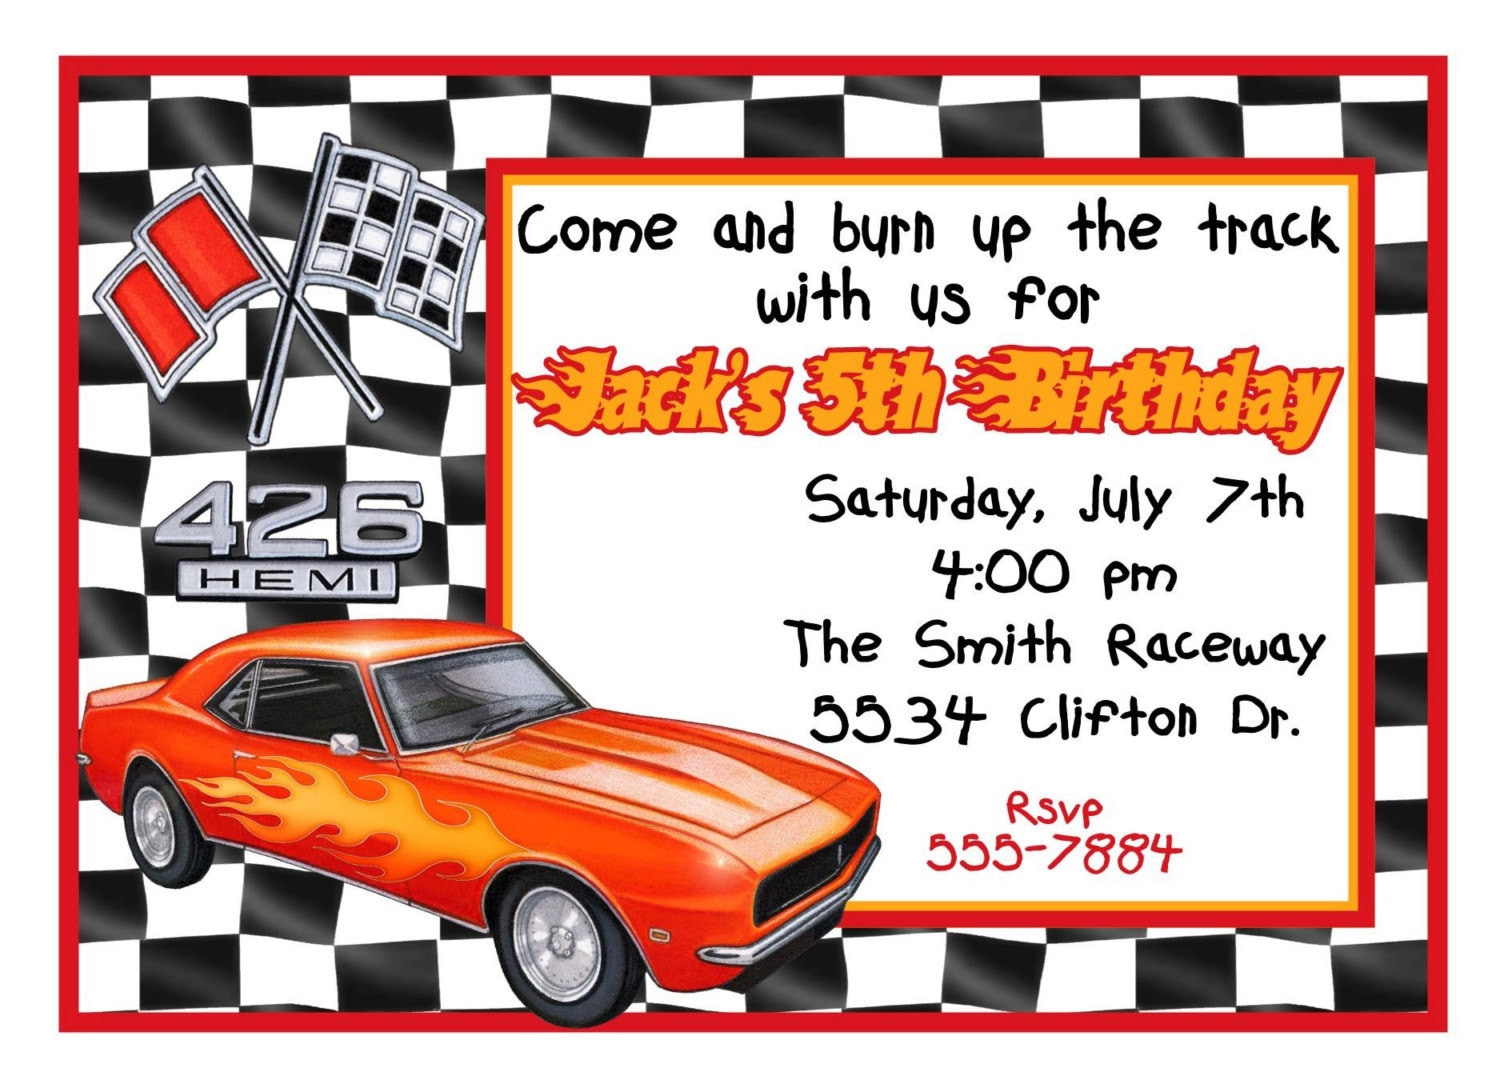 personalized birthday invitations race car car racing, Birthday invitations